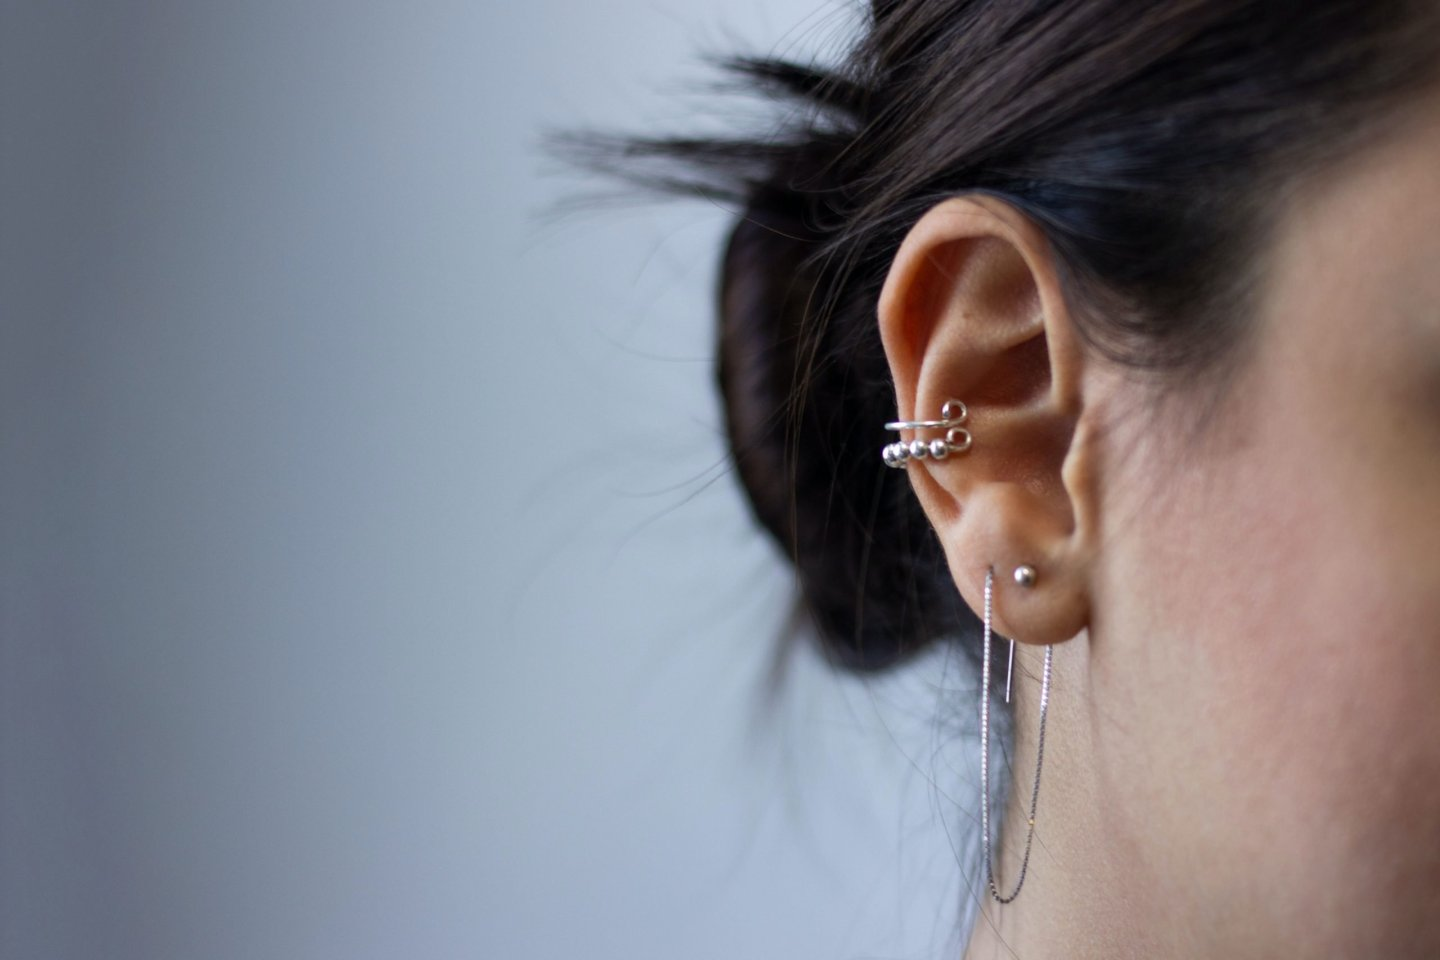 Photo showing Ear piercings as accessories